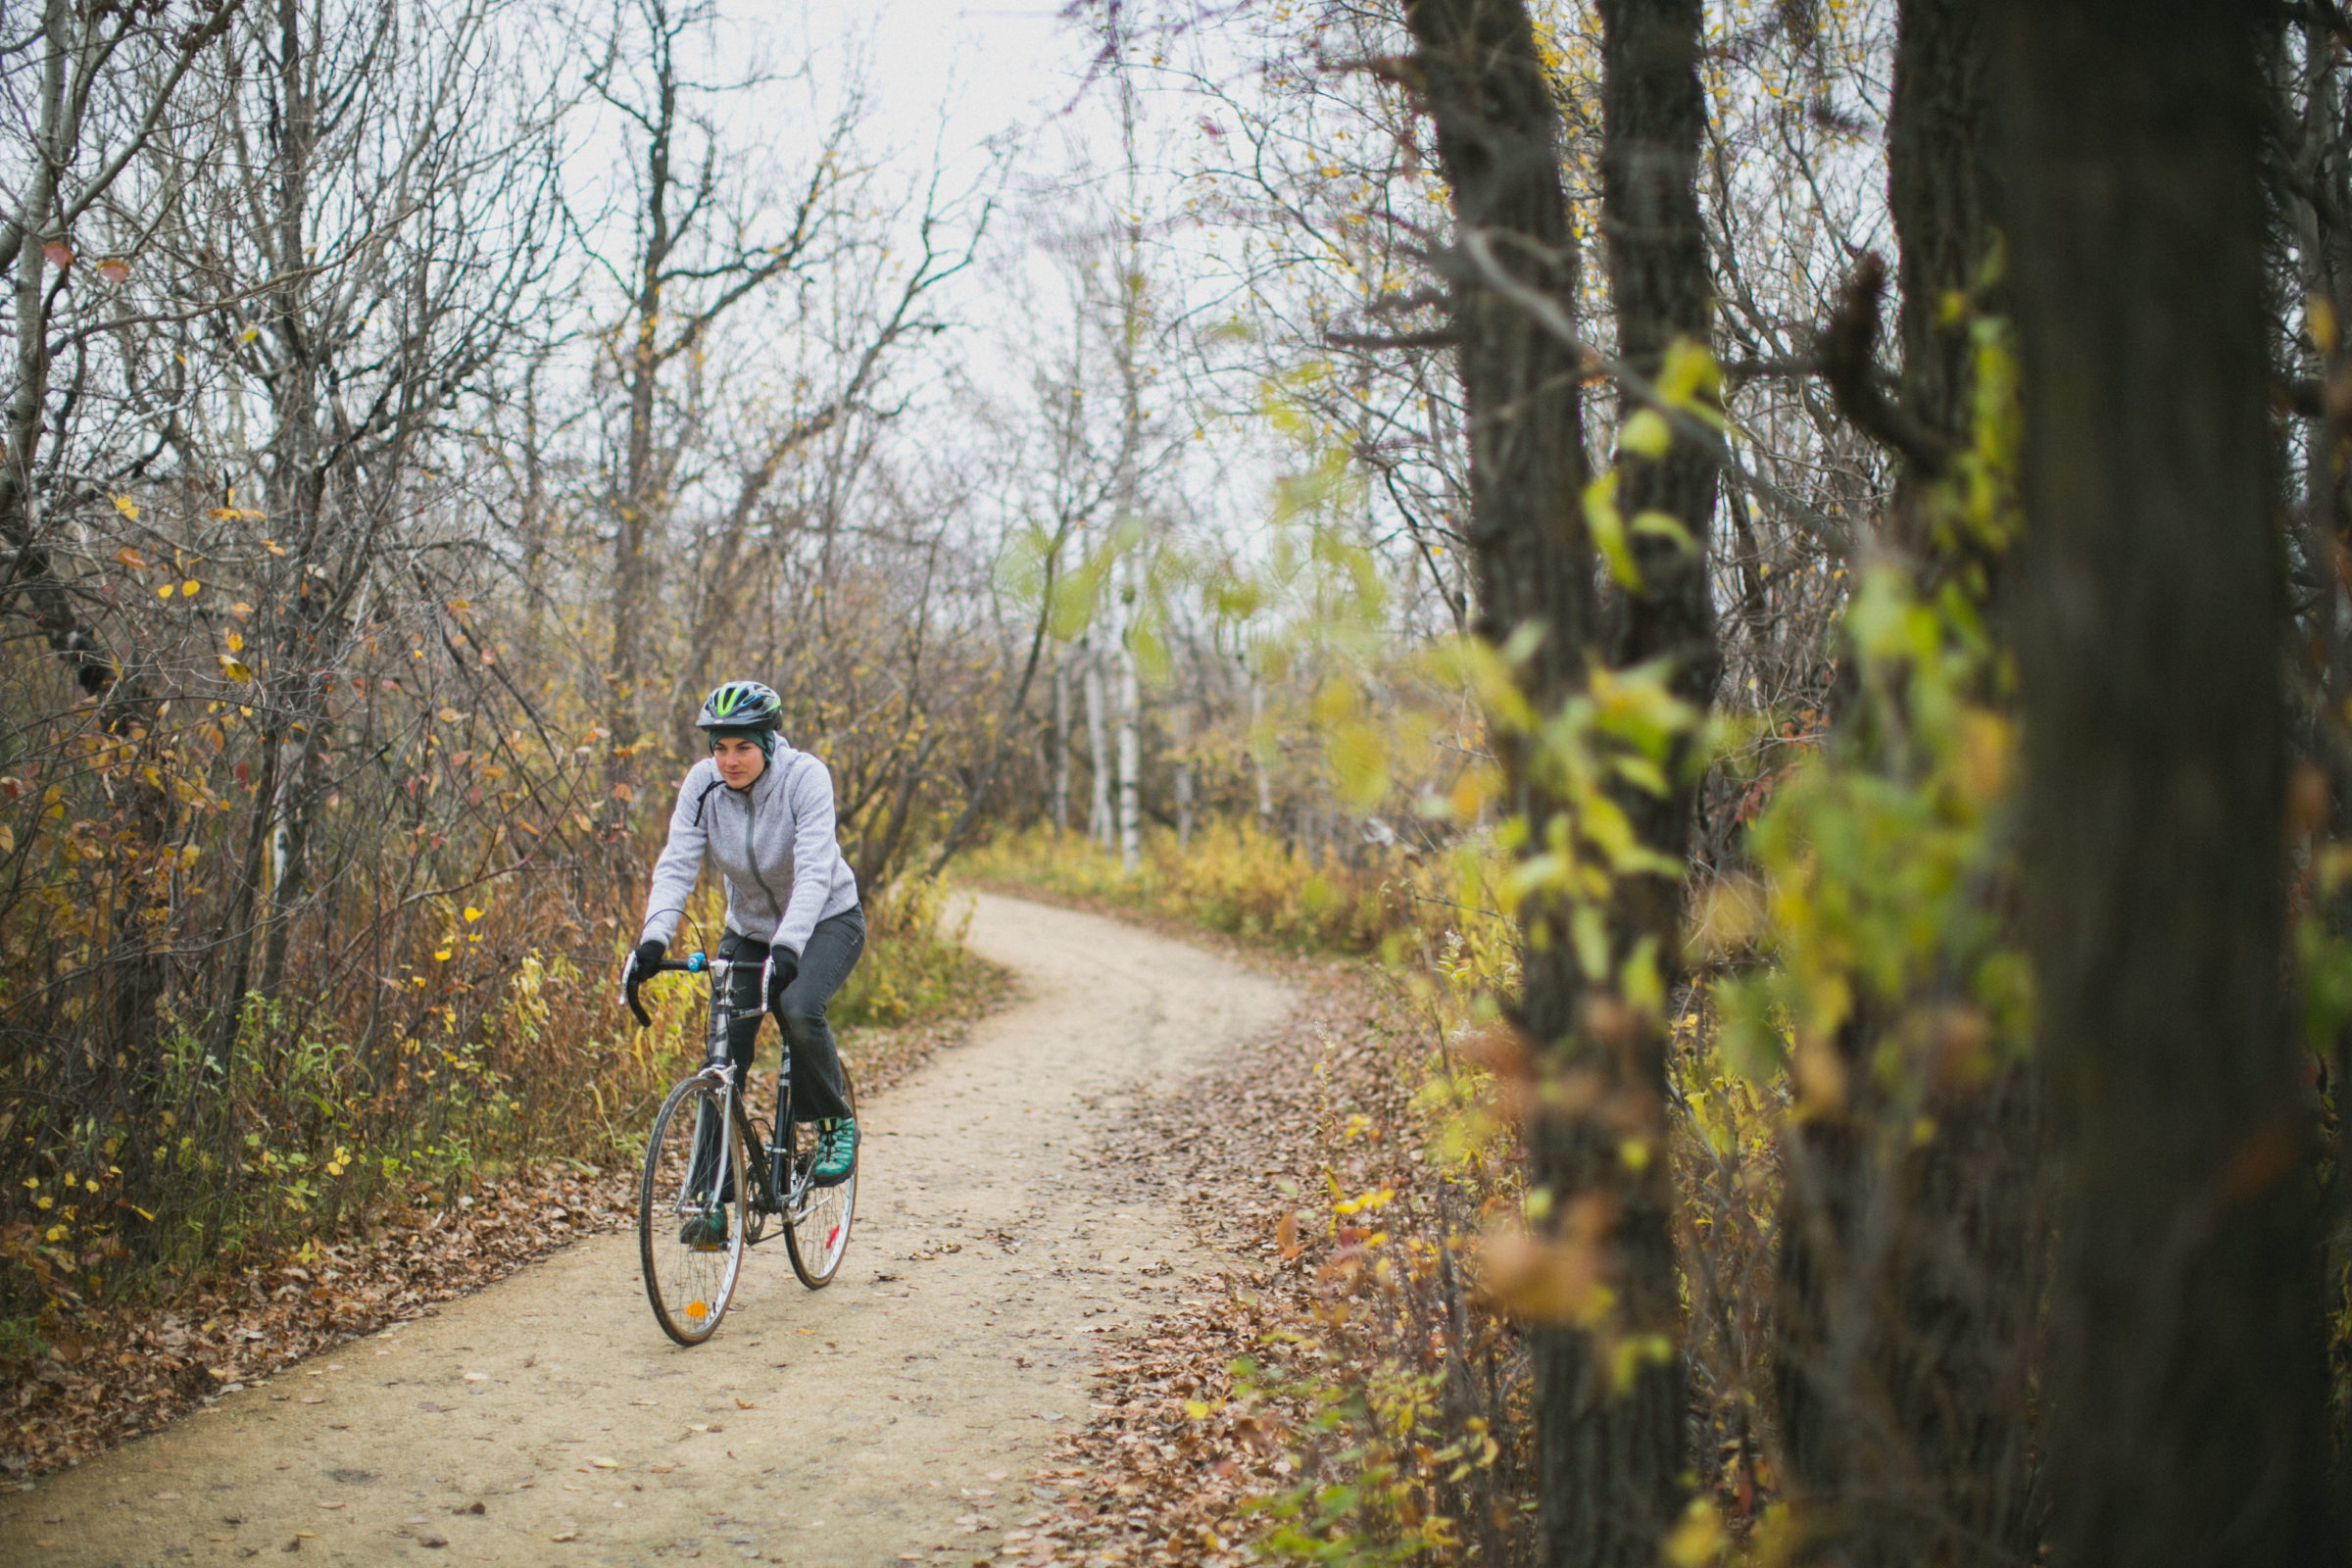 Visitor biking on trail through forest